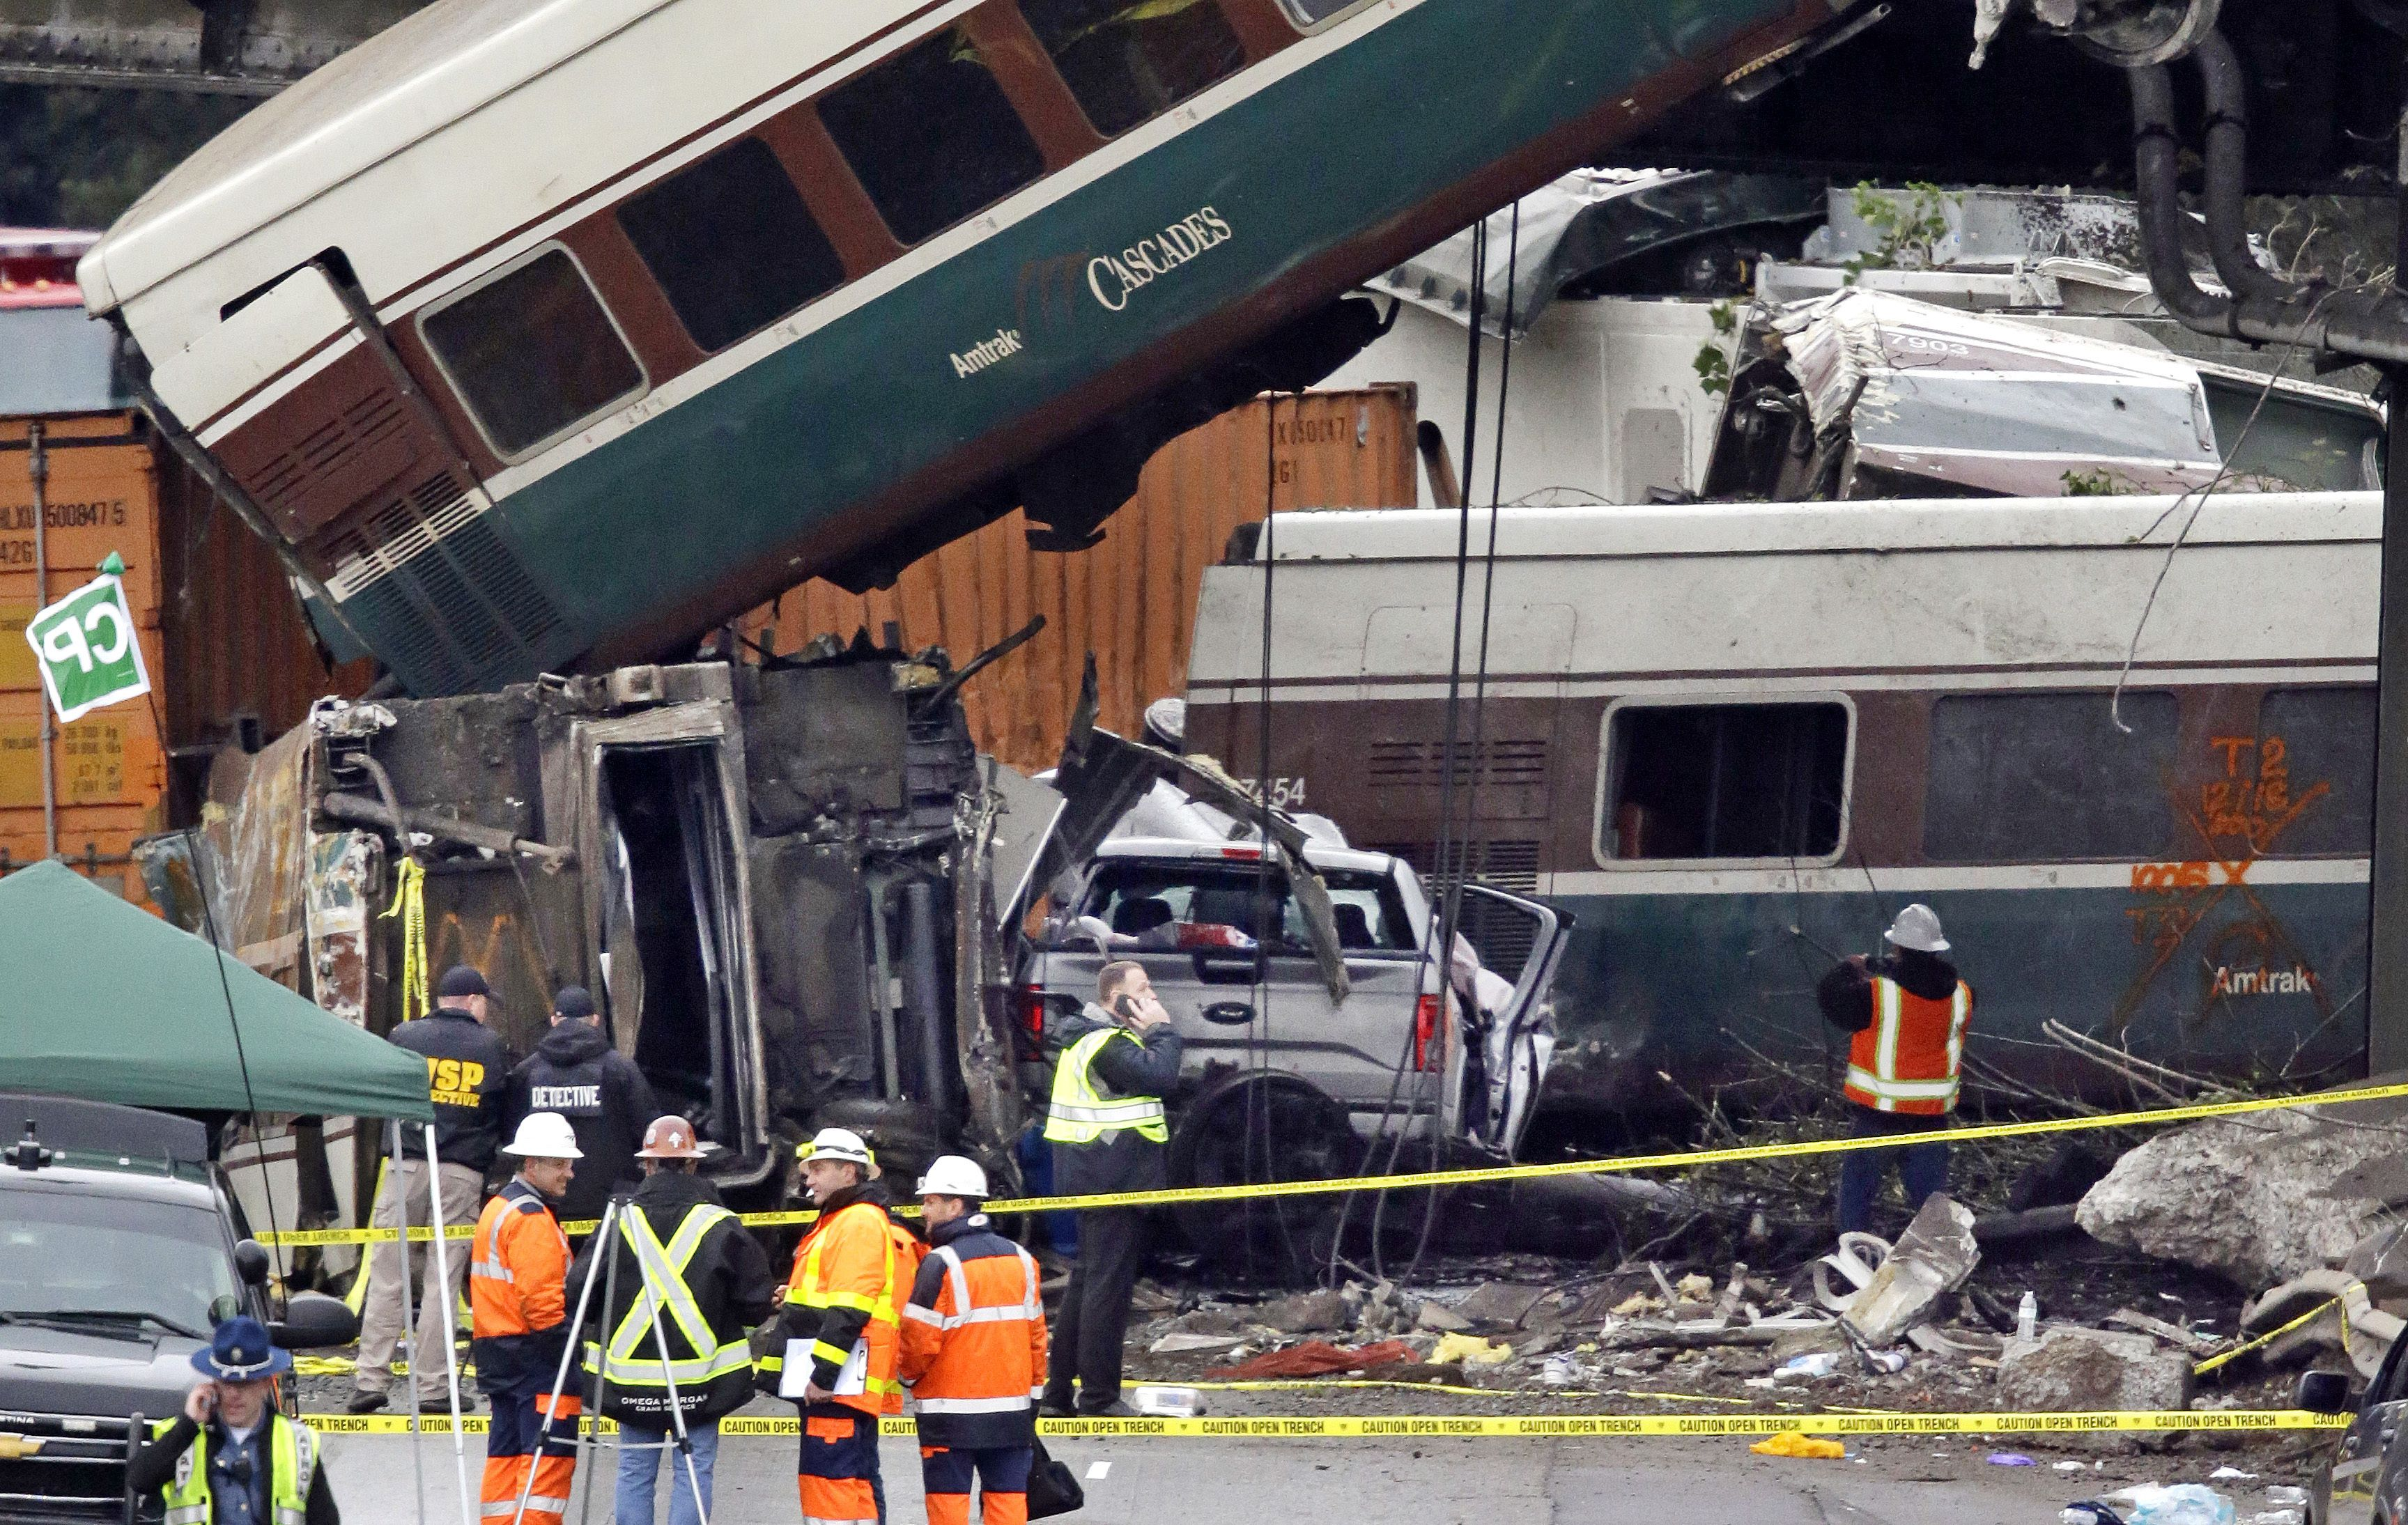 Cars from an Amtrak train that derailed above lay spilled onto Interstate 5 alongside smashed vehicles, in DuPont, Wash. The Amtrak train making the first-ever run along a faster new route hurtled off the overpass Monday near Tacoma and spilled some of its cars onto the highway below, killing some people, authorities said — Shutterstock/AP